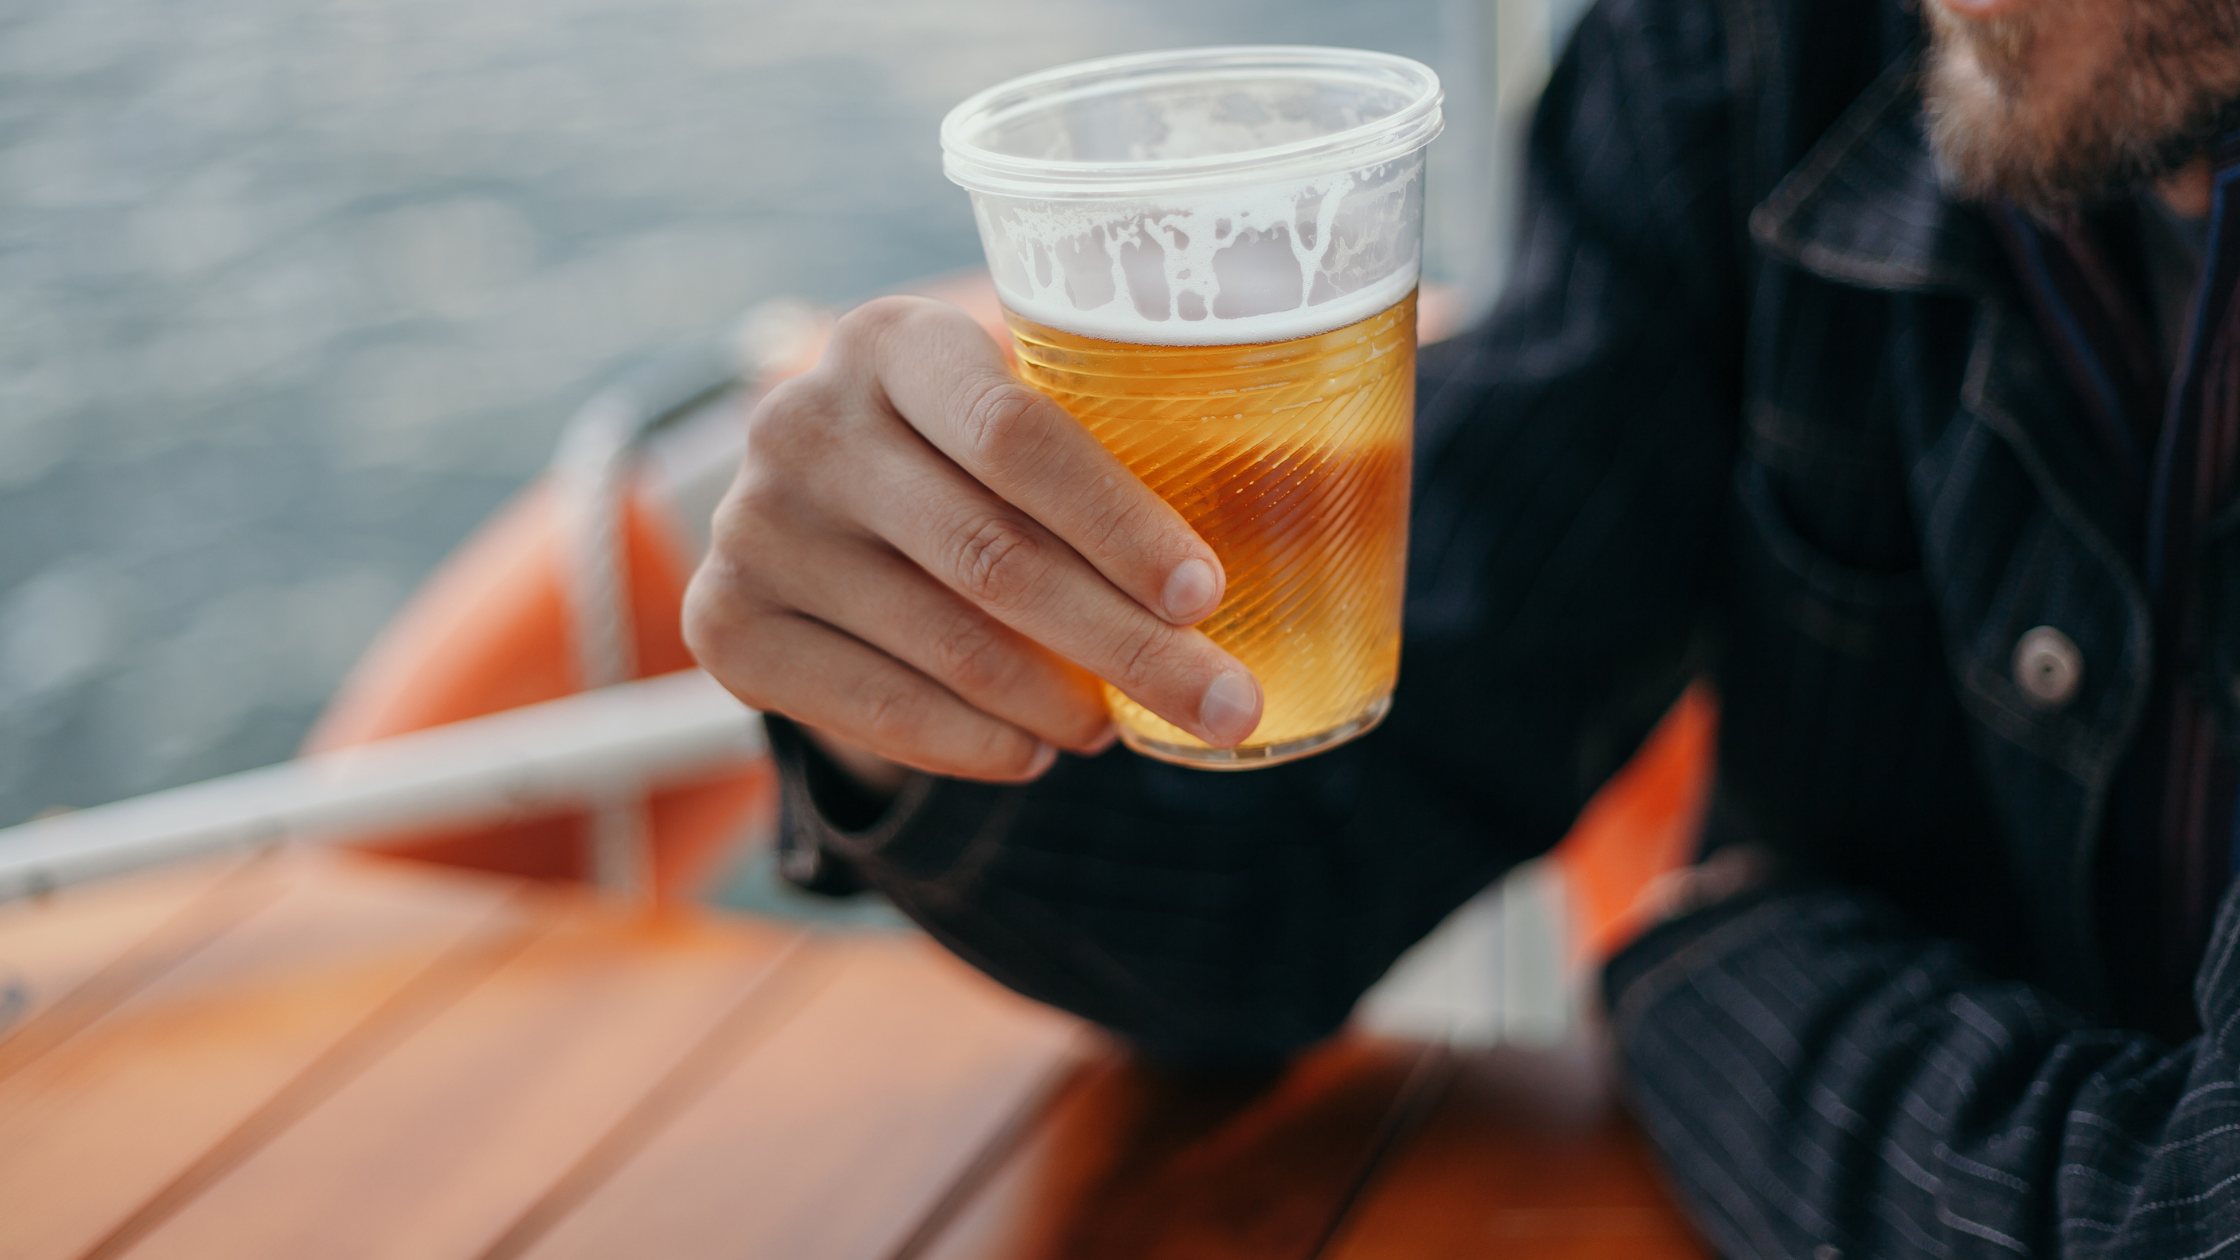 Snag-A-Slip Blog - Boating Safety Tips for 4th of July - Drinking and Driving